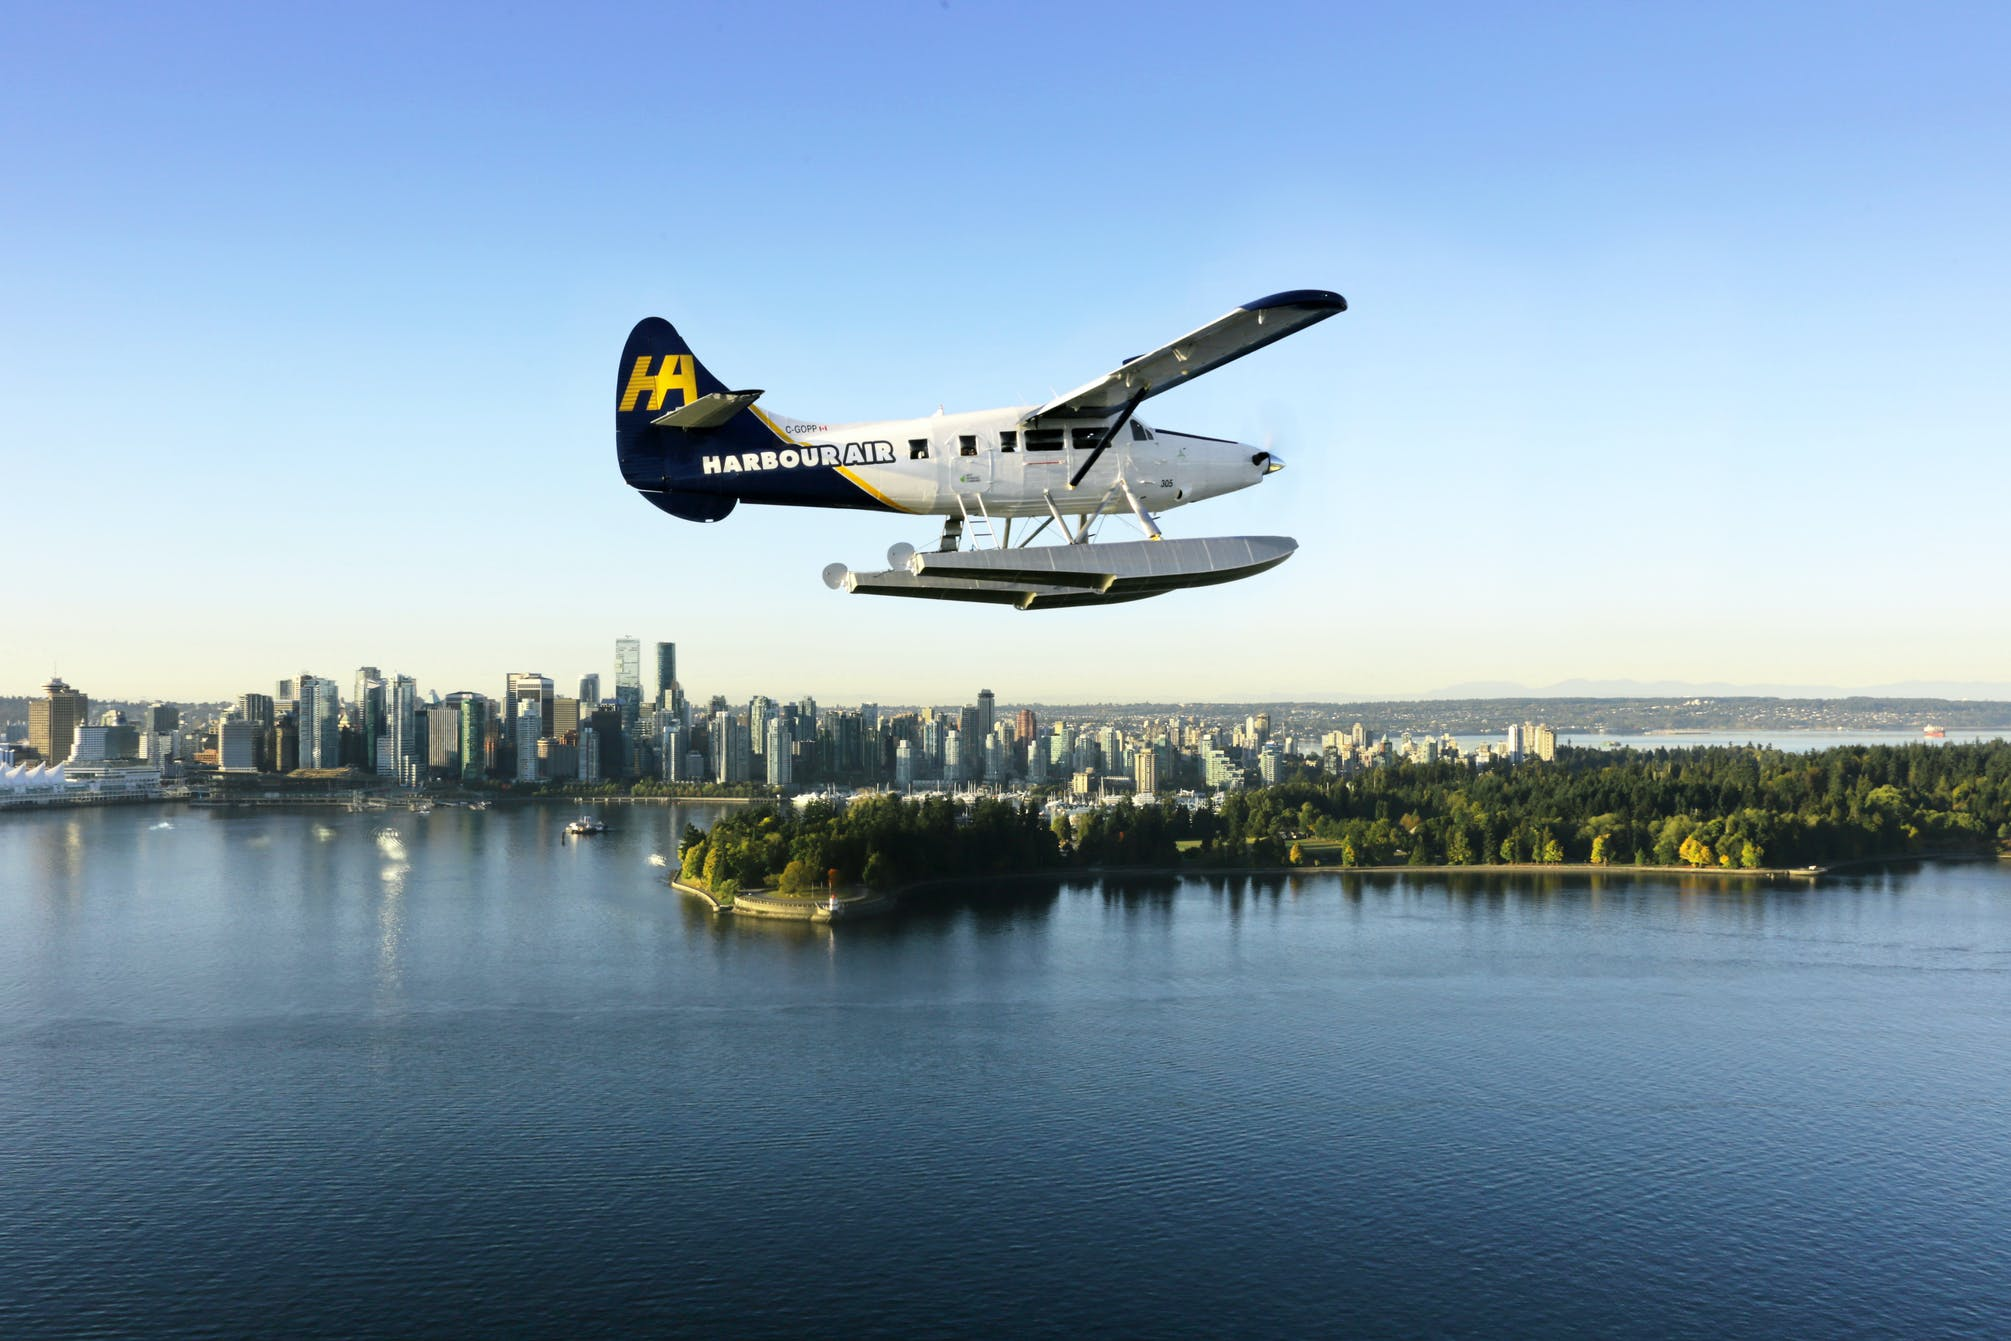 Harbour Air seaplane